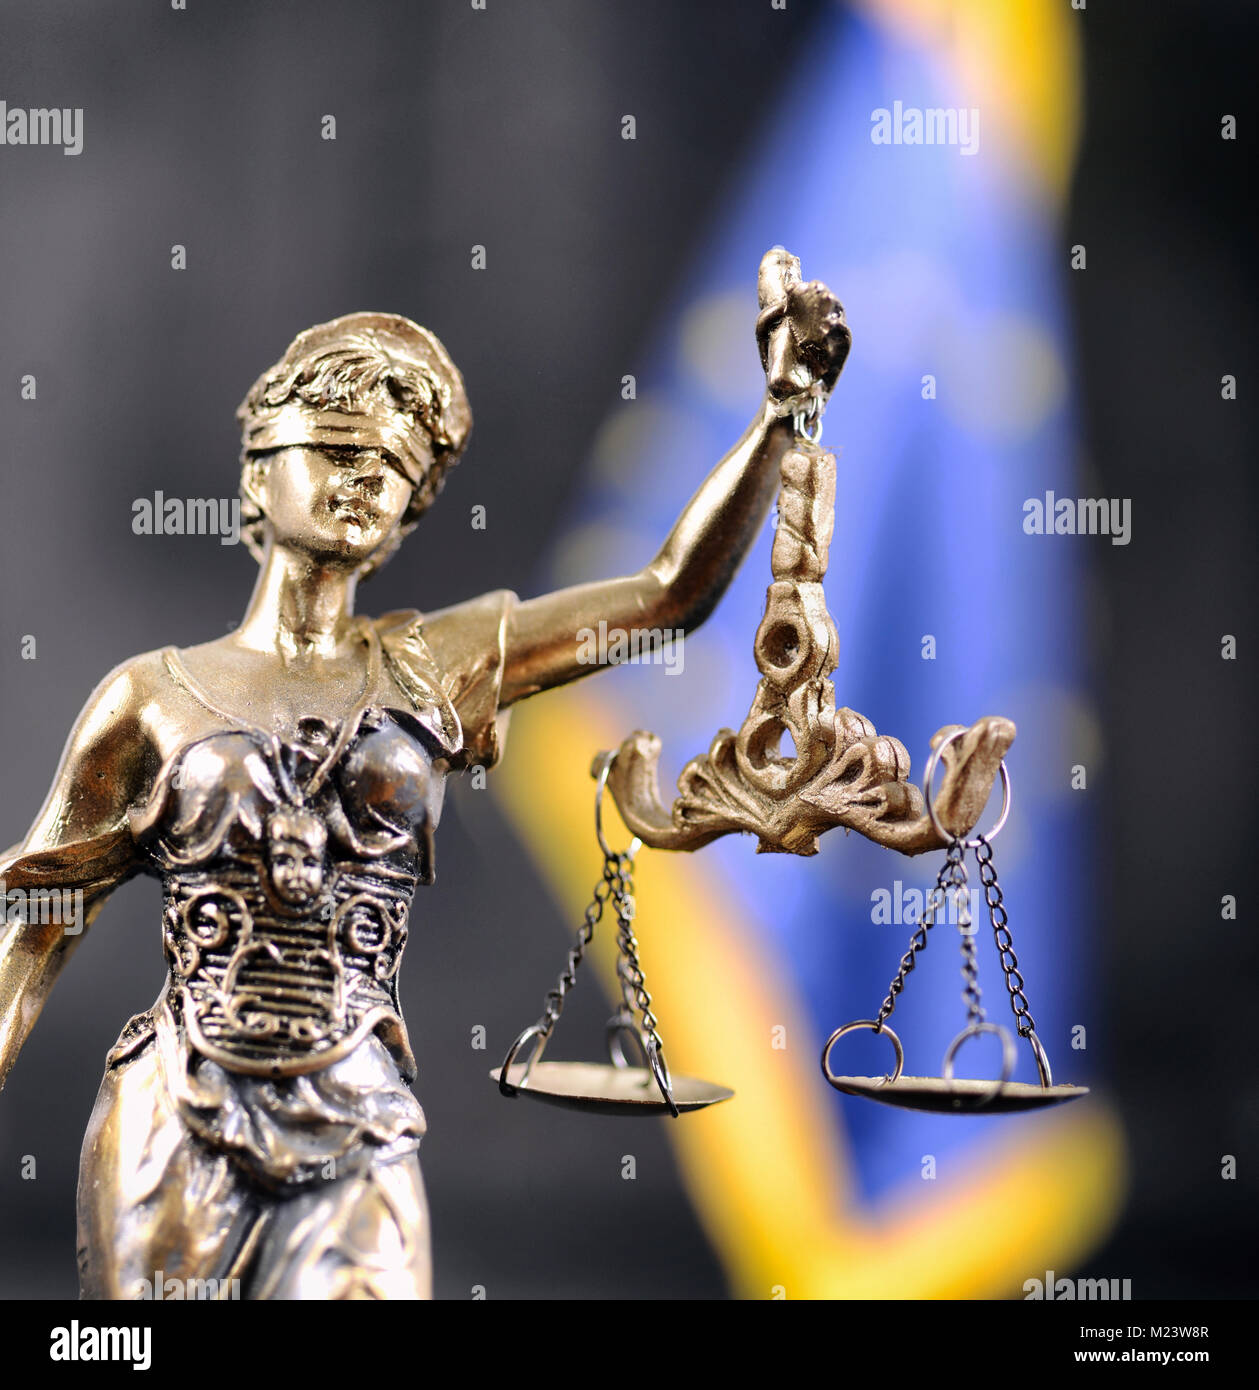 Law and Justice, Legality concept, Scales of Justice, Justitia, Lady Justice in front of the European Union flag - Stock Image